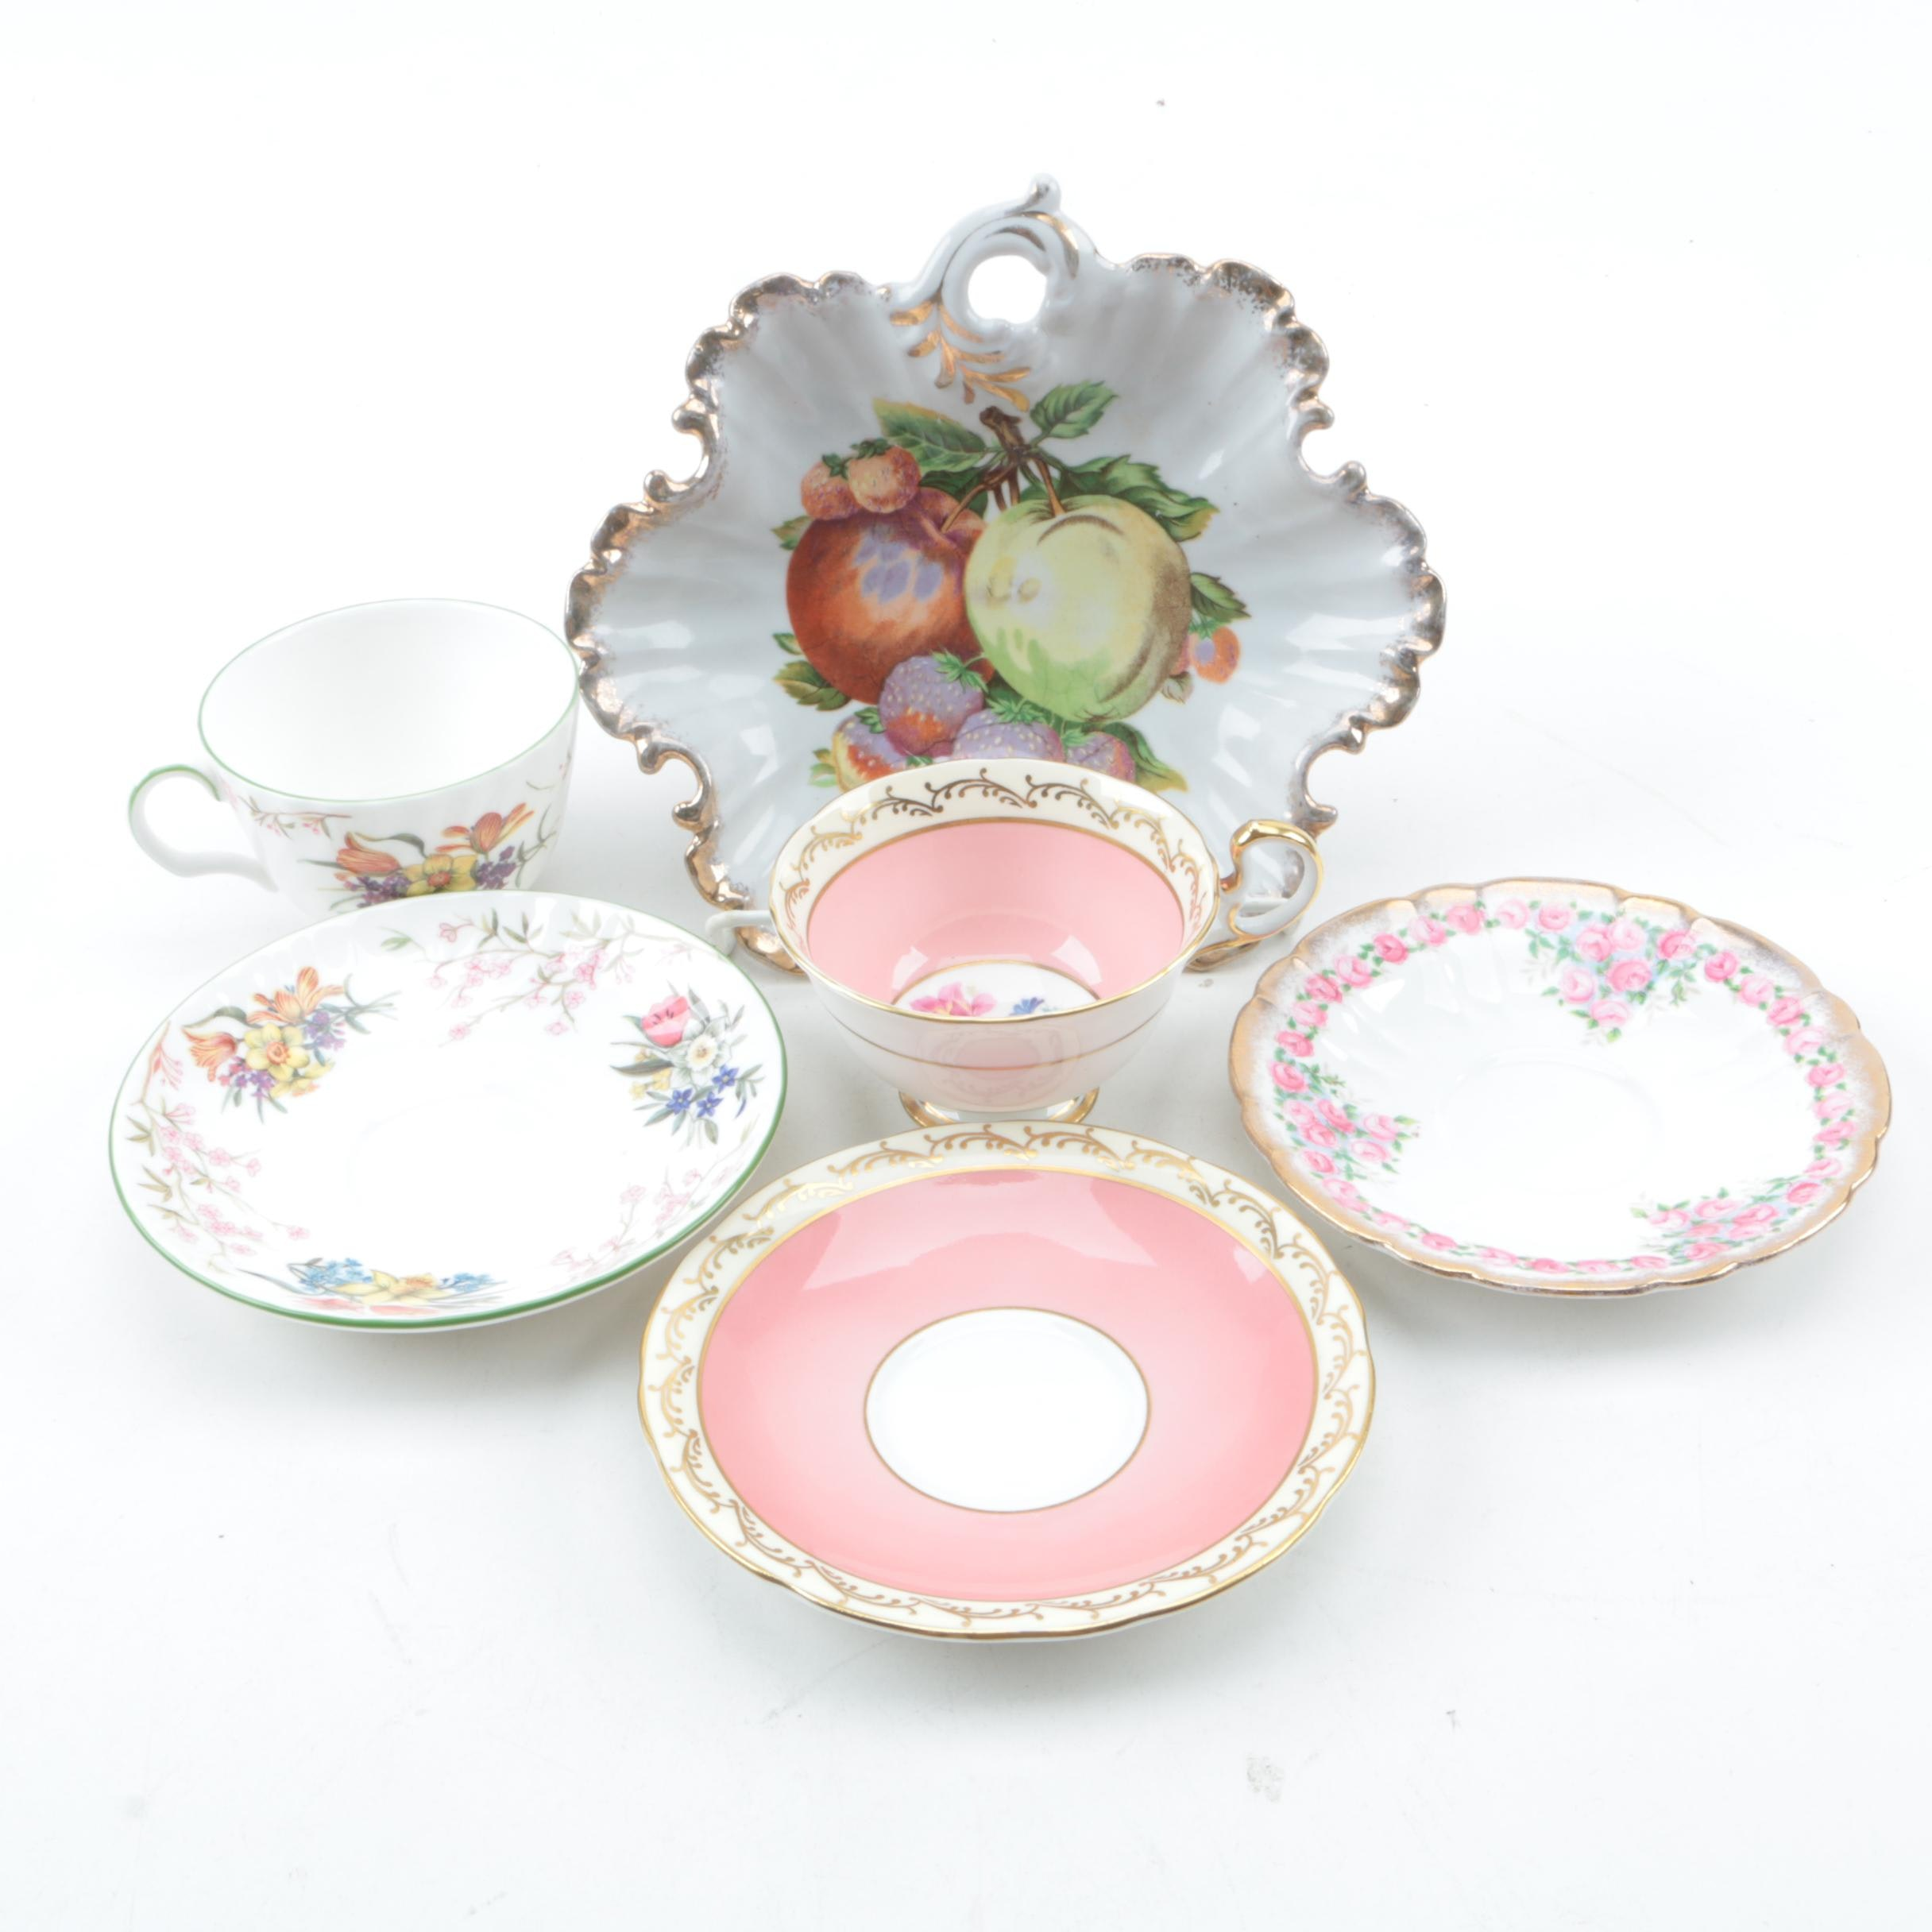 Teacups and Saucers with Serving Dish